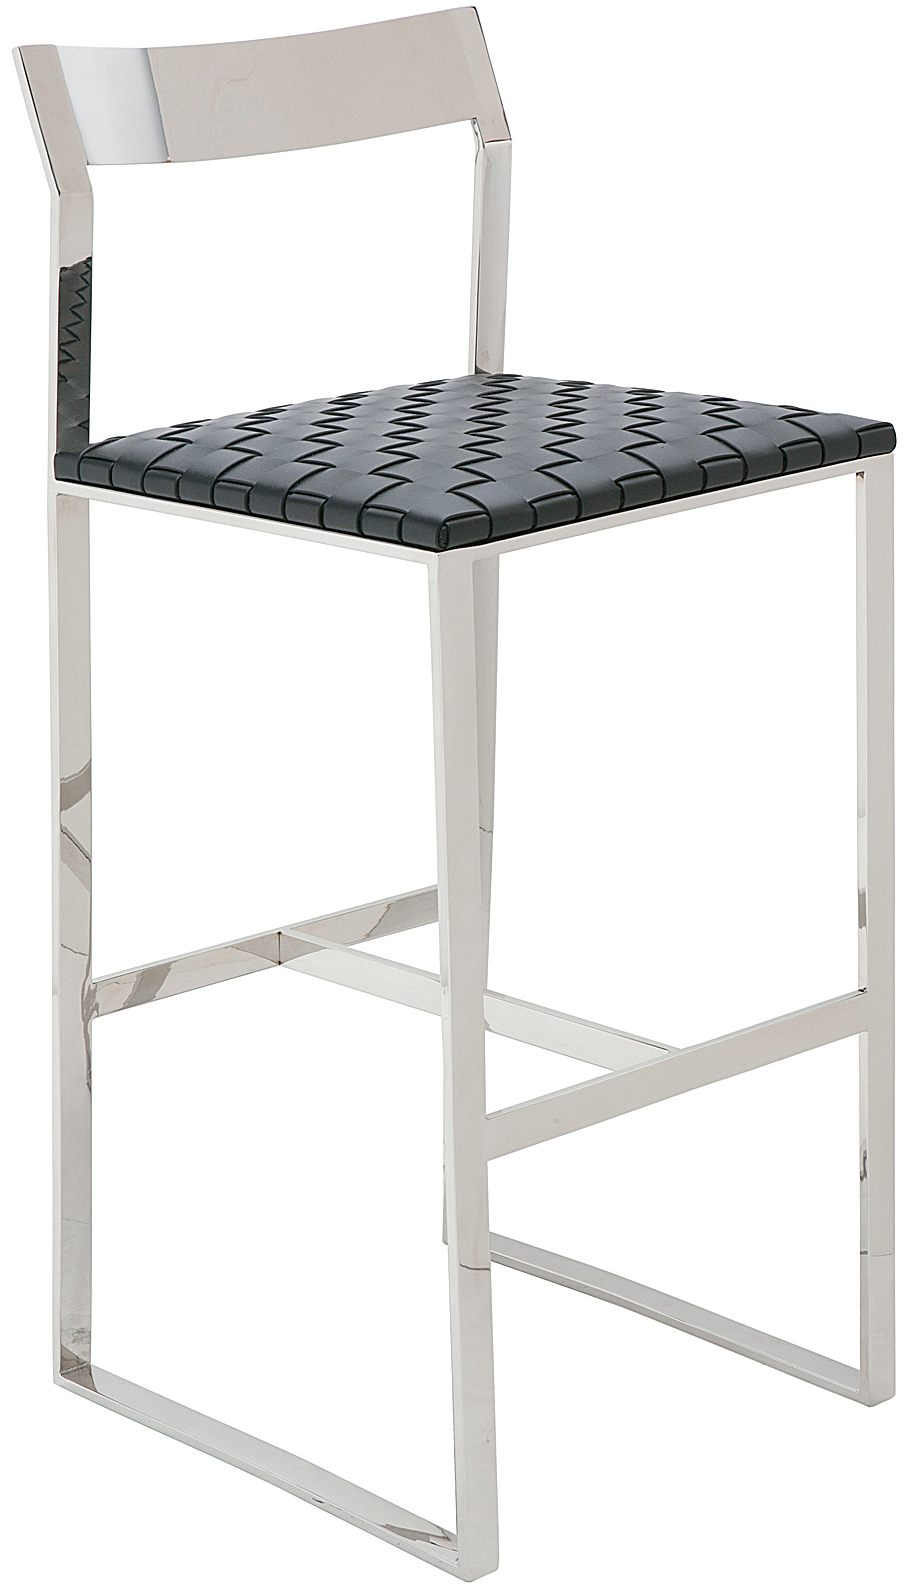 the camille counter stool in black